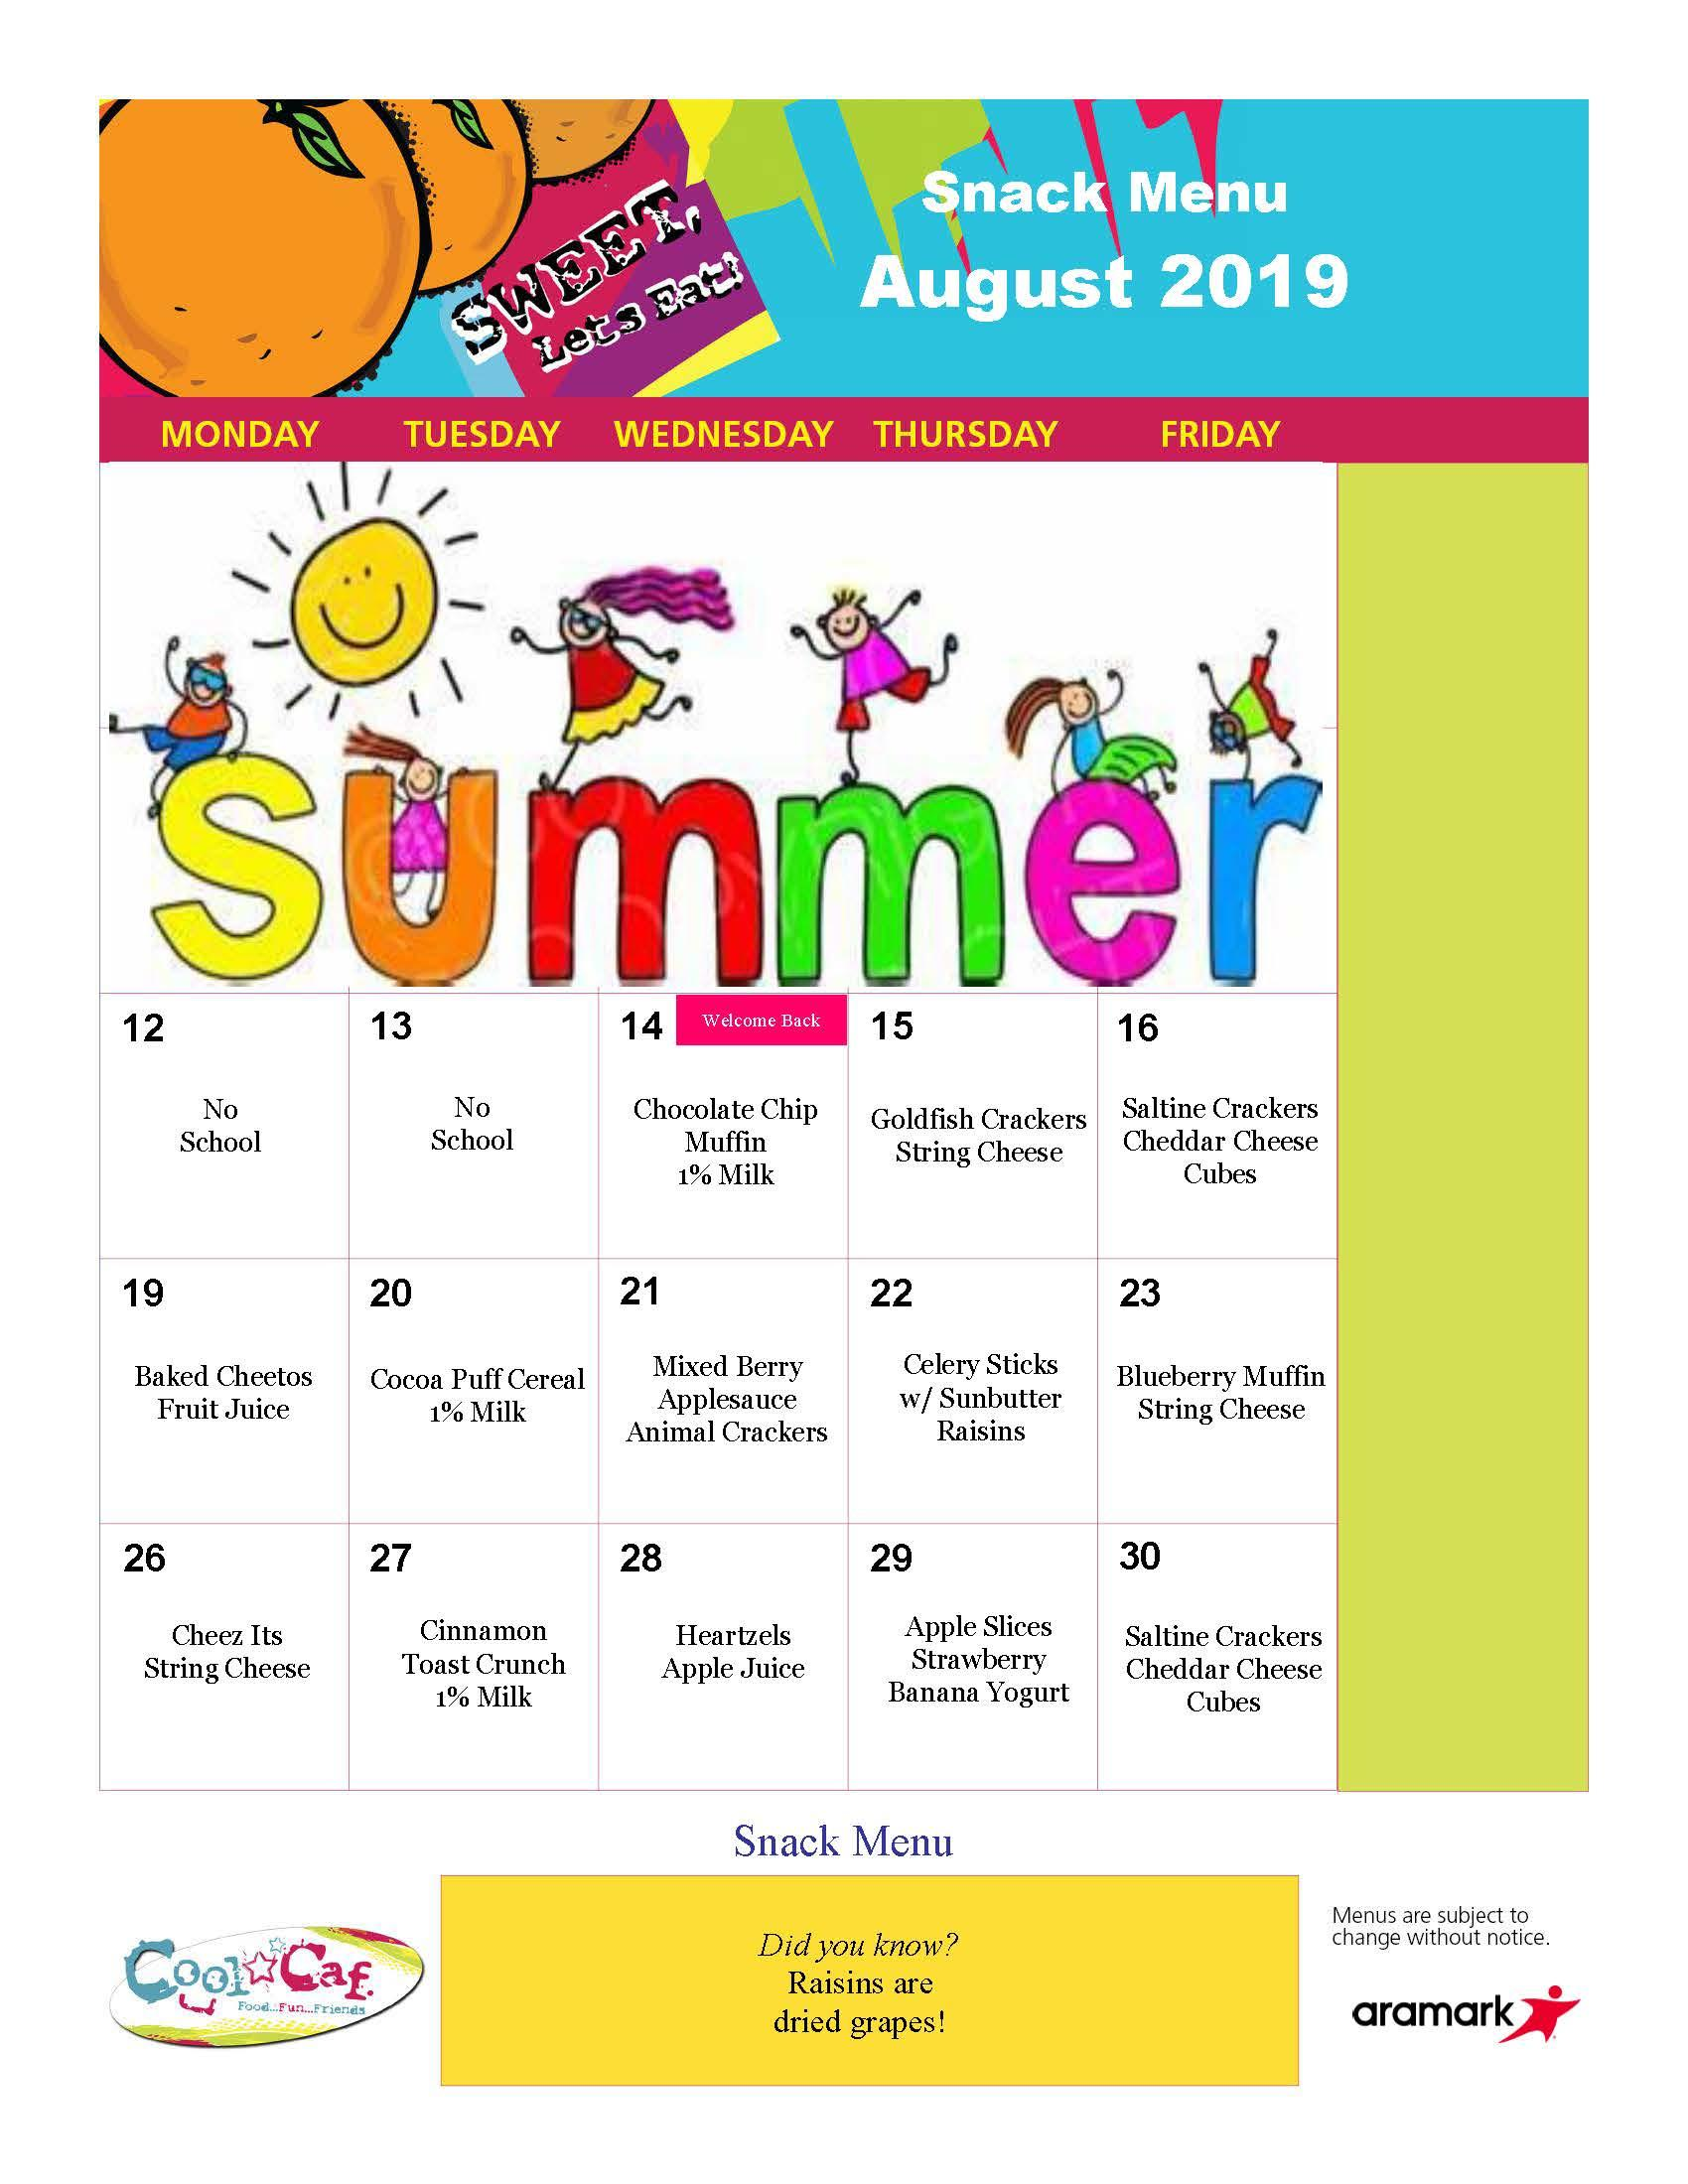 BASEC snacks for August 2019